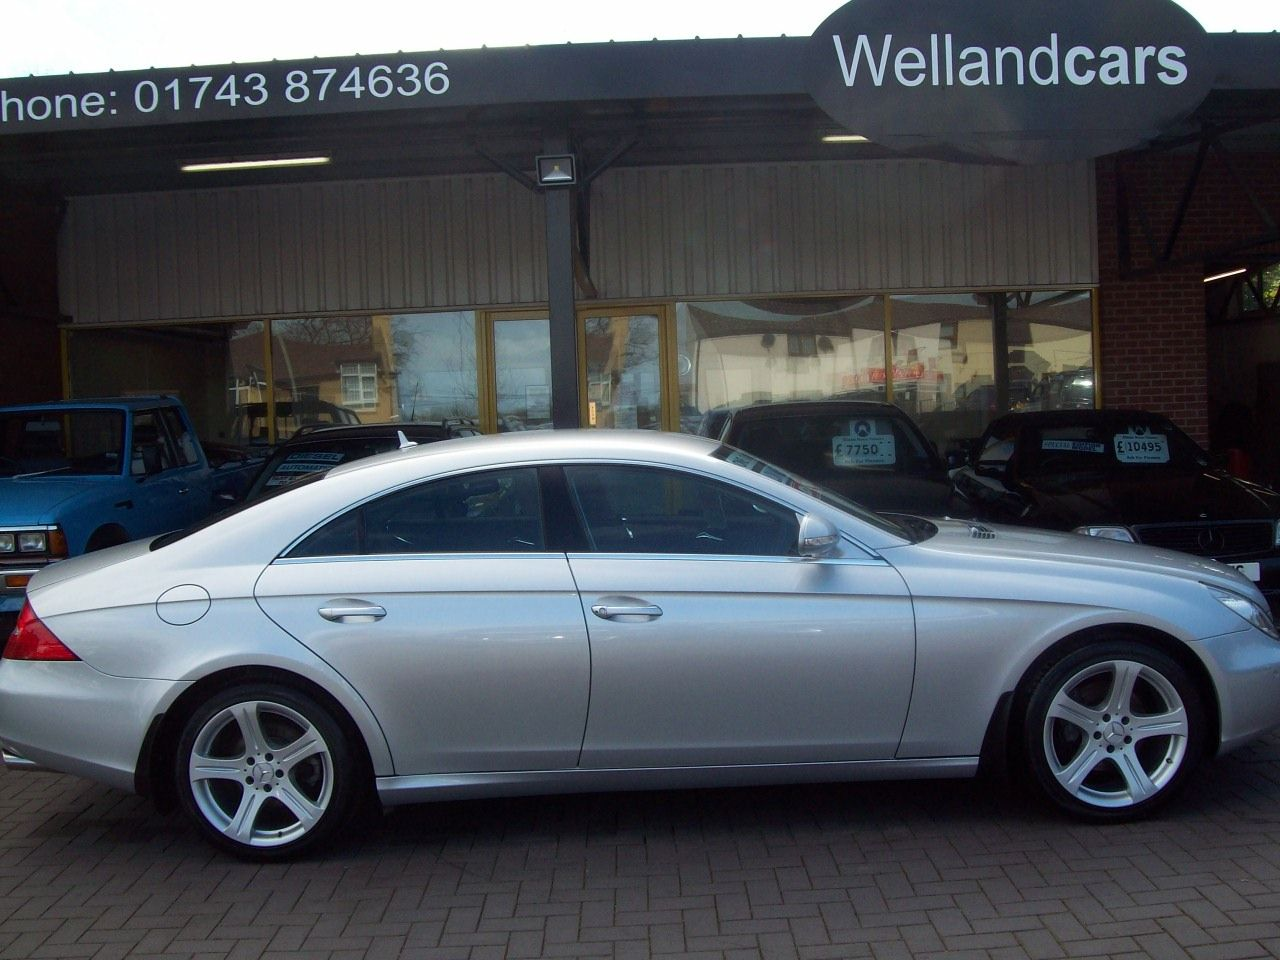 Mercedes-Benz CLS 3.0 CLS320 CDI 4dr Tip Auto Air Suspension,Comand,Full Leather,32k Miles, Full MB S/H, 1 Previous Owner Coupe Diesel Silver at Welland Cars Shrewsbury